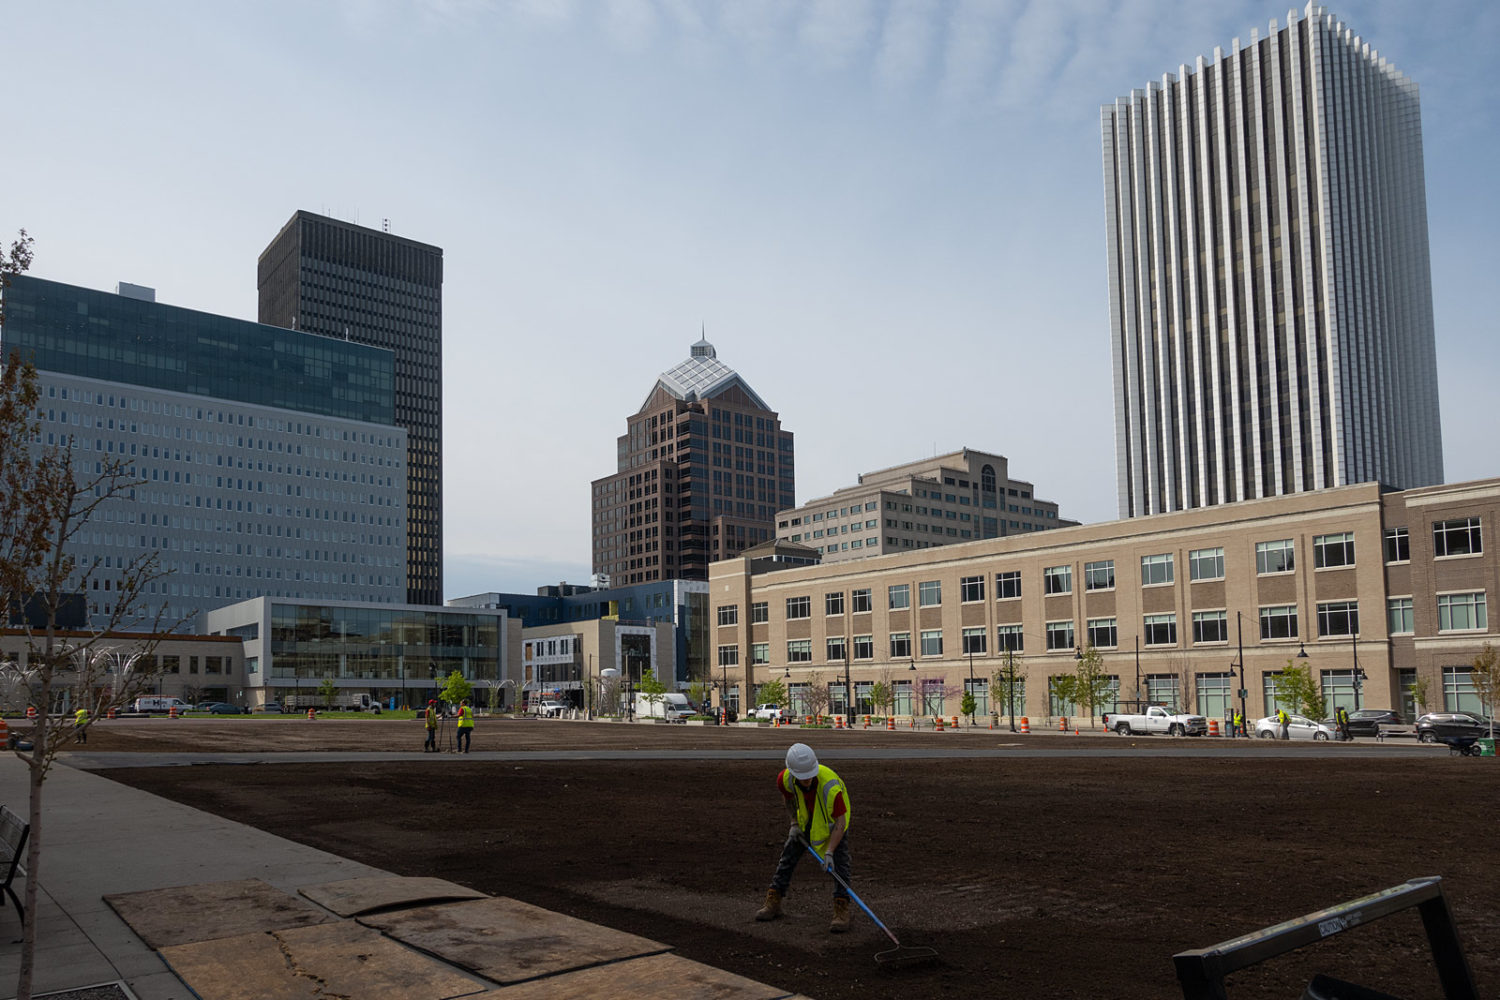 Parcel 5 Green Space downtown Rochester